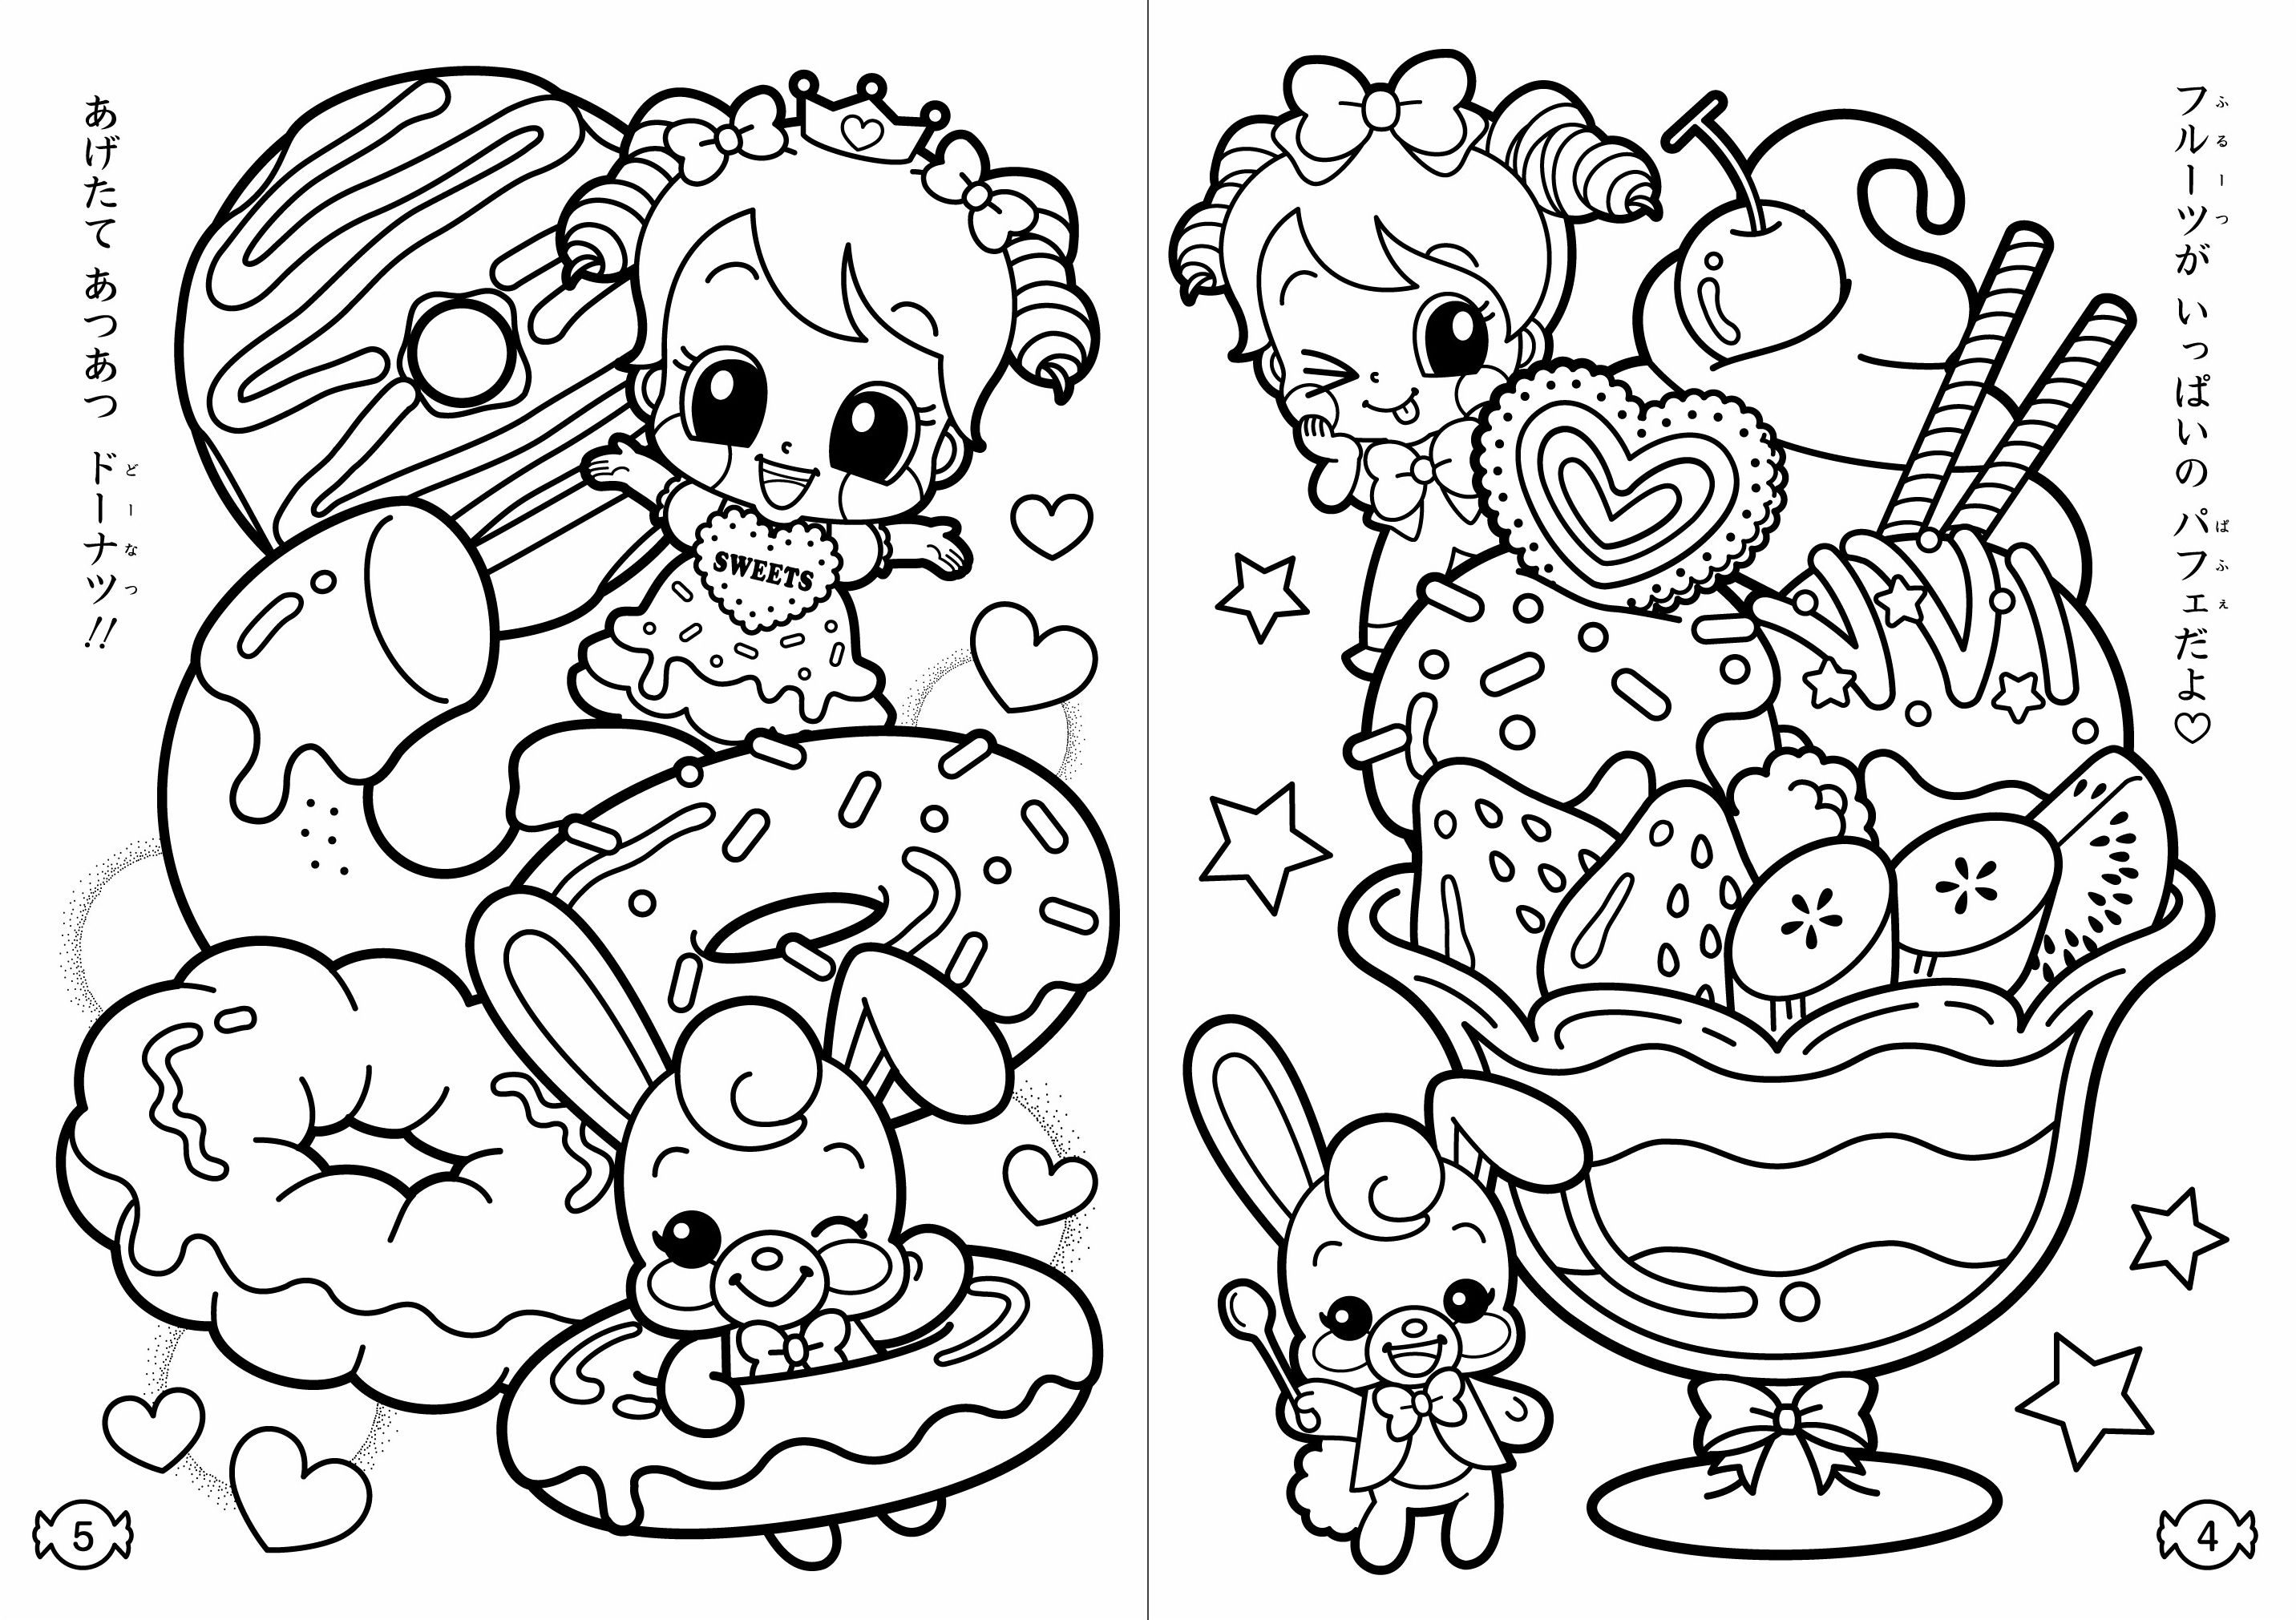 poko coloring pages - photo#29